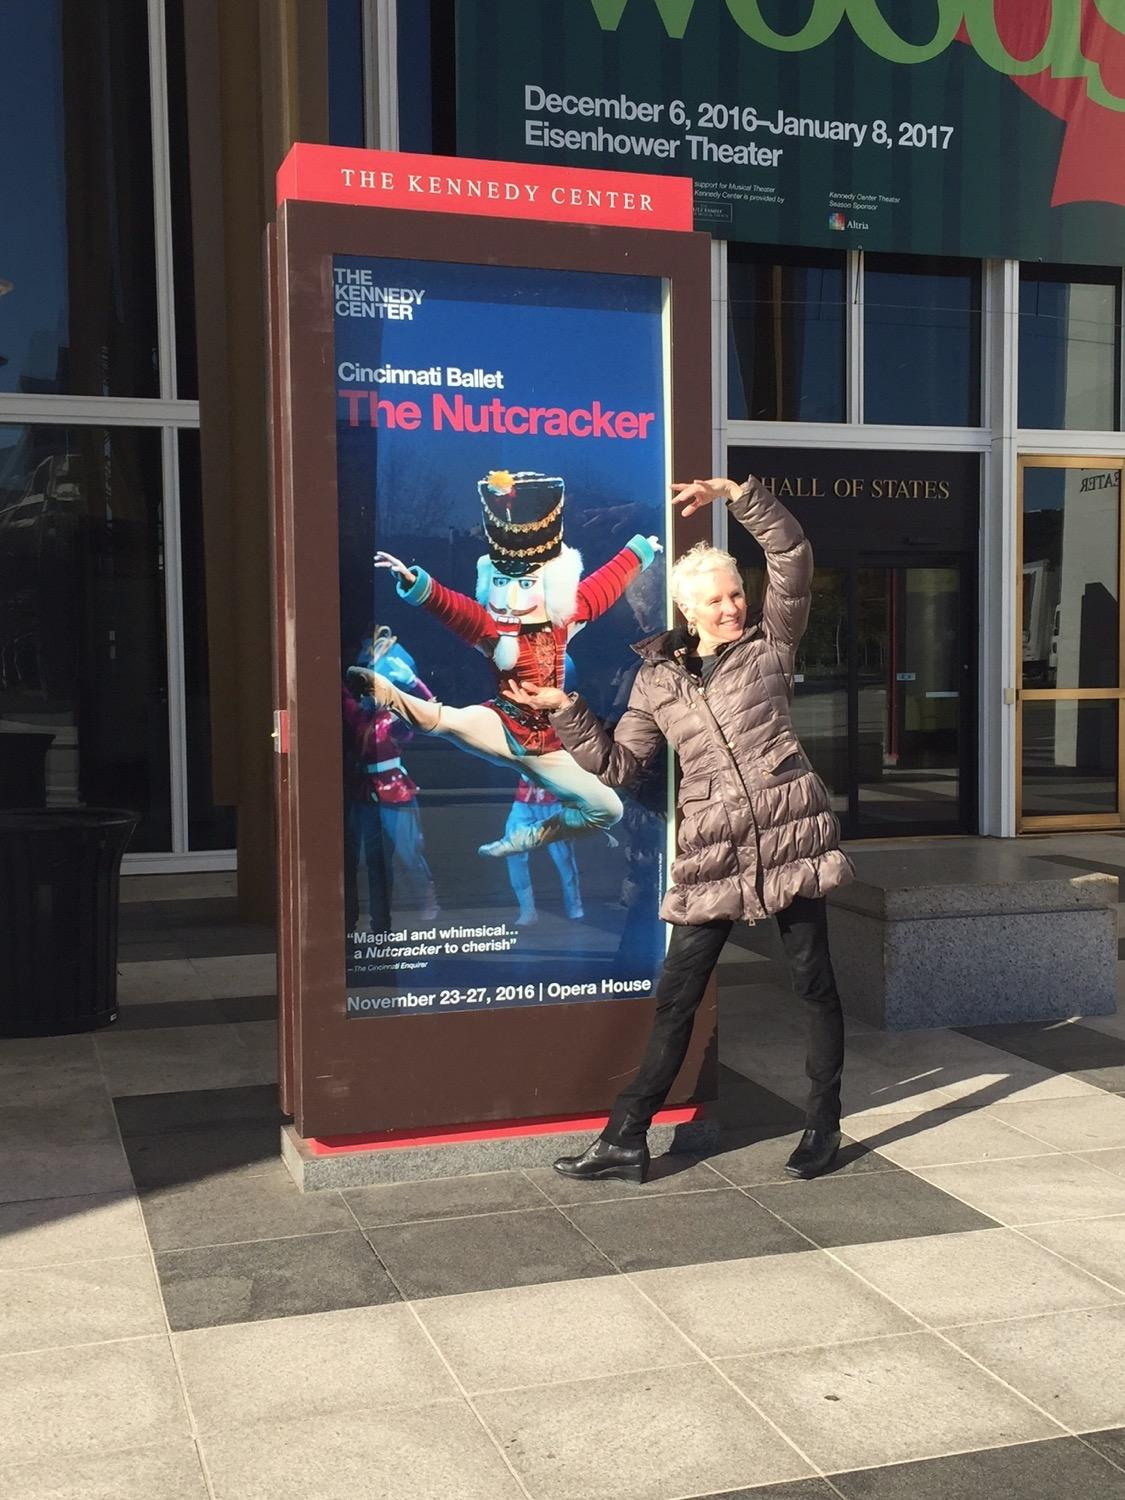 Artistic Director and CEO Victoria Morgan in front of the Cincinnati Ballet boards at the Kennedy Center. / Image courtesy of the Cincinnati Ballet